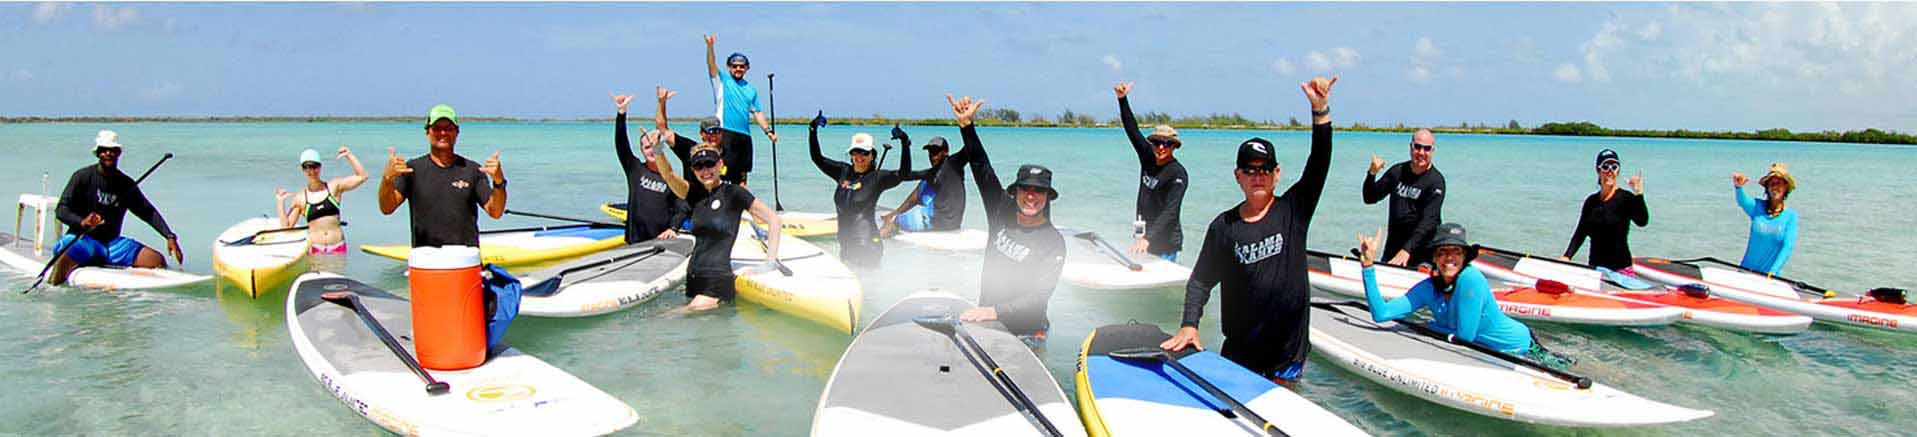 5 Summer Vacation Water Activities in Turks And Caicos